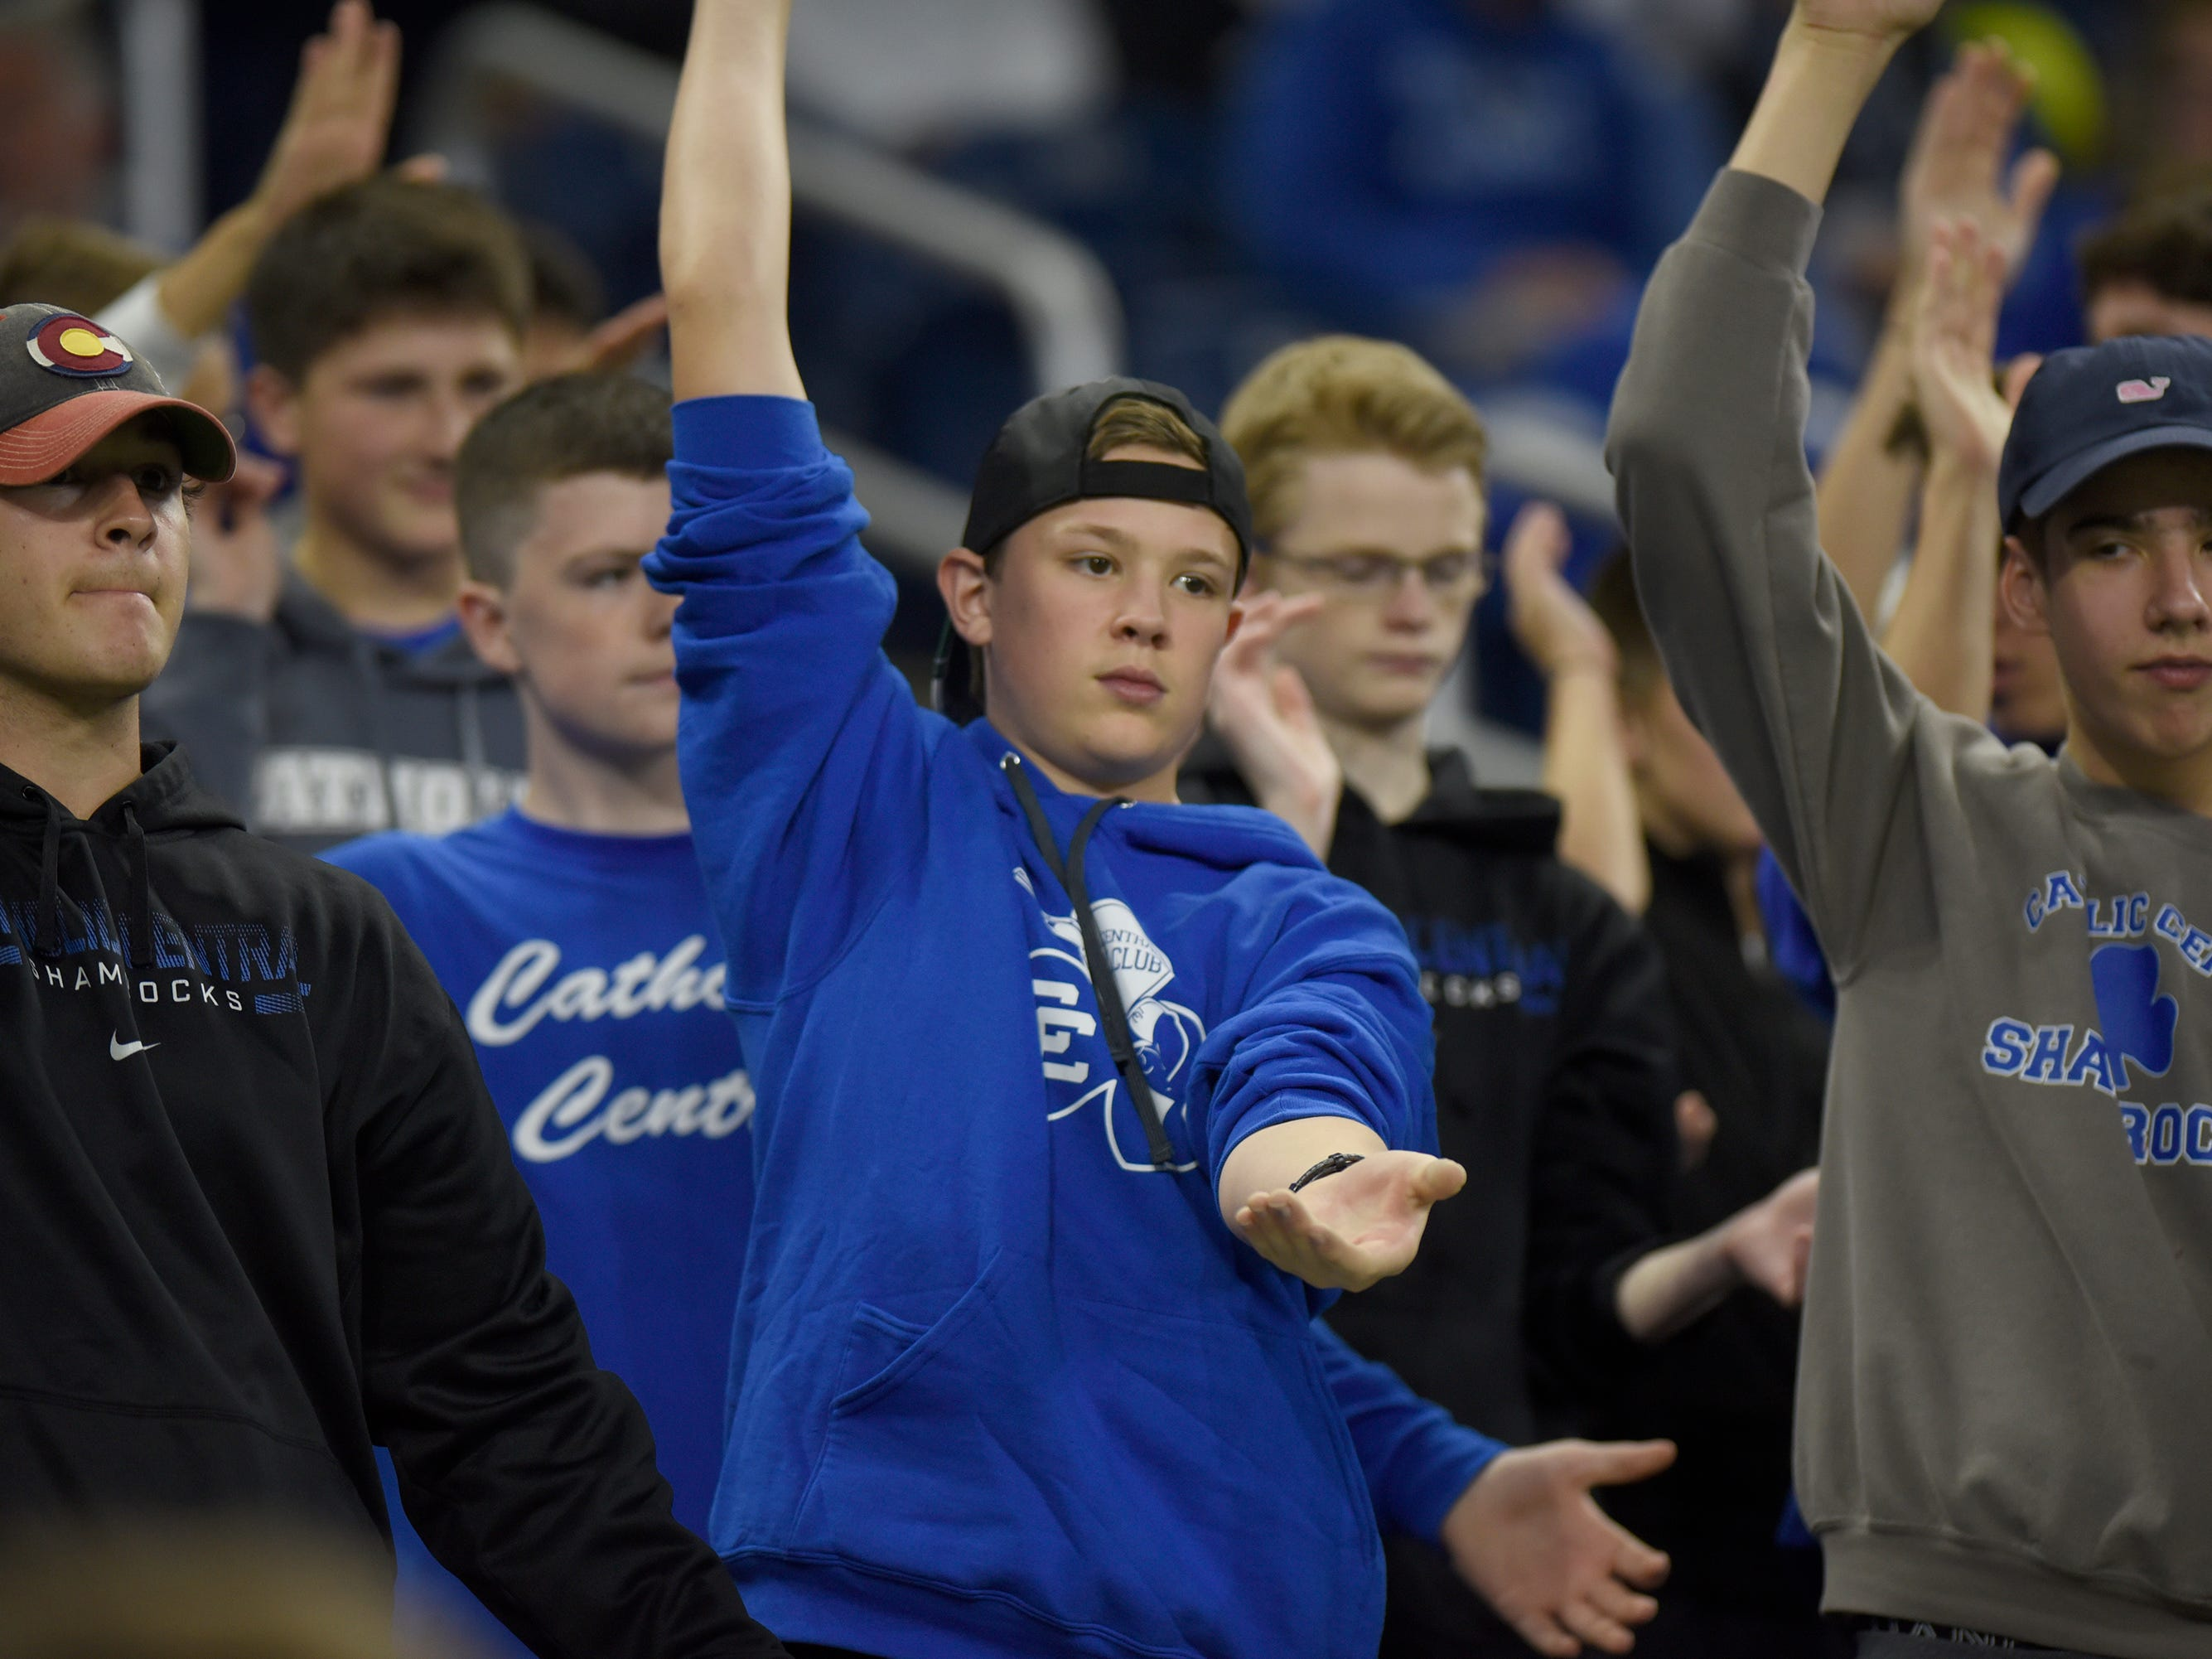 Detorit Catholic Central student section cheers on the Shamrocks during Catholic League Prep Bowl AB Division championship game at Ford Field Oct. 20, 2018.